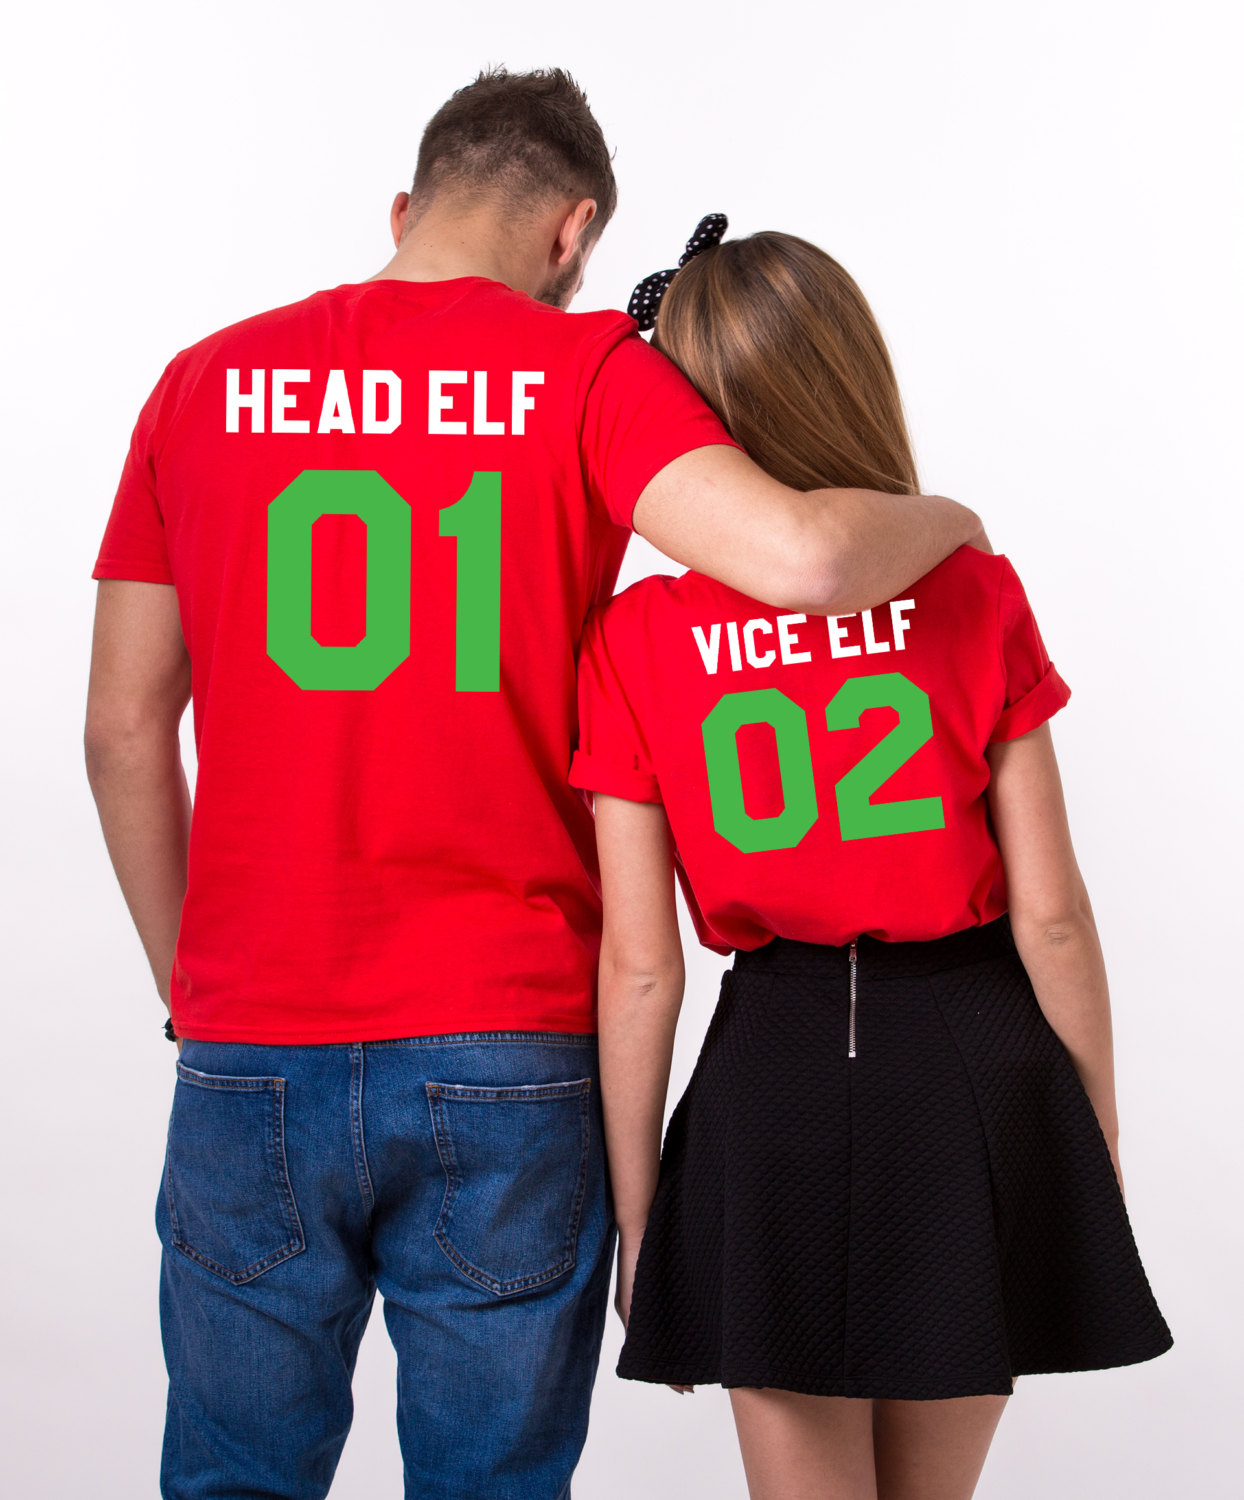 head elf vice elf matching shirts print on the back matching couples christmas shirts